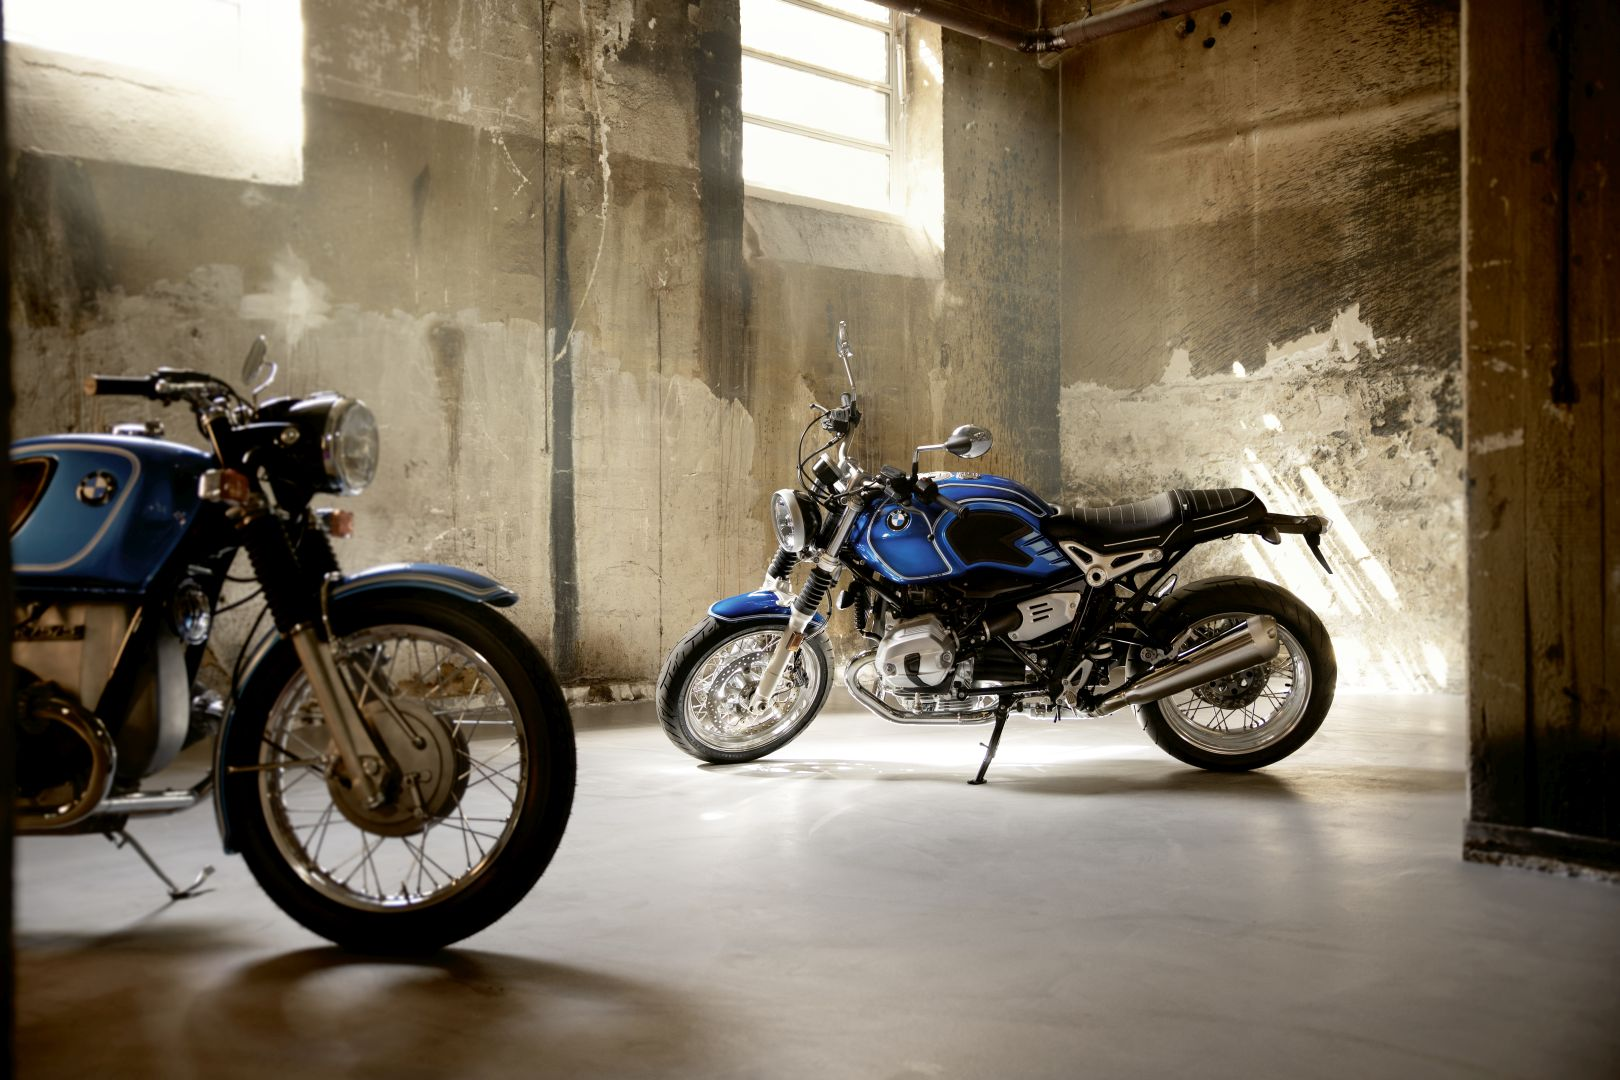 New BMW R nineT /5 Model Launched to Celebrate 50th Anniversary